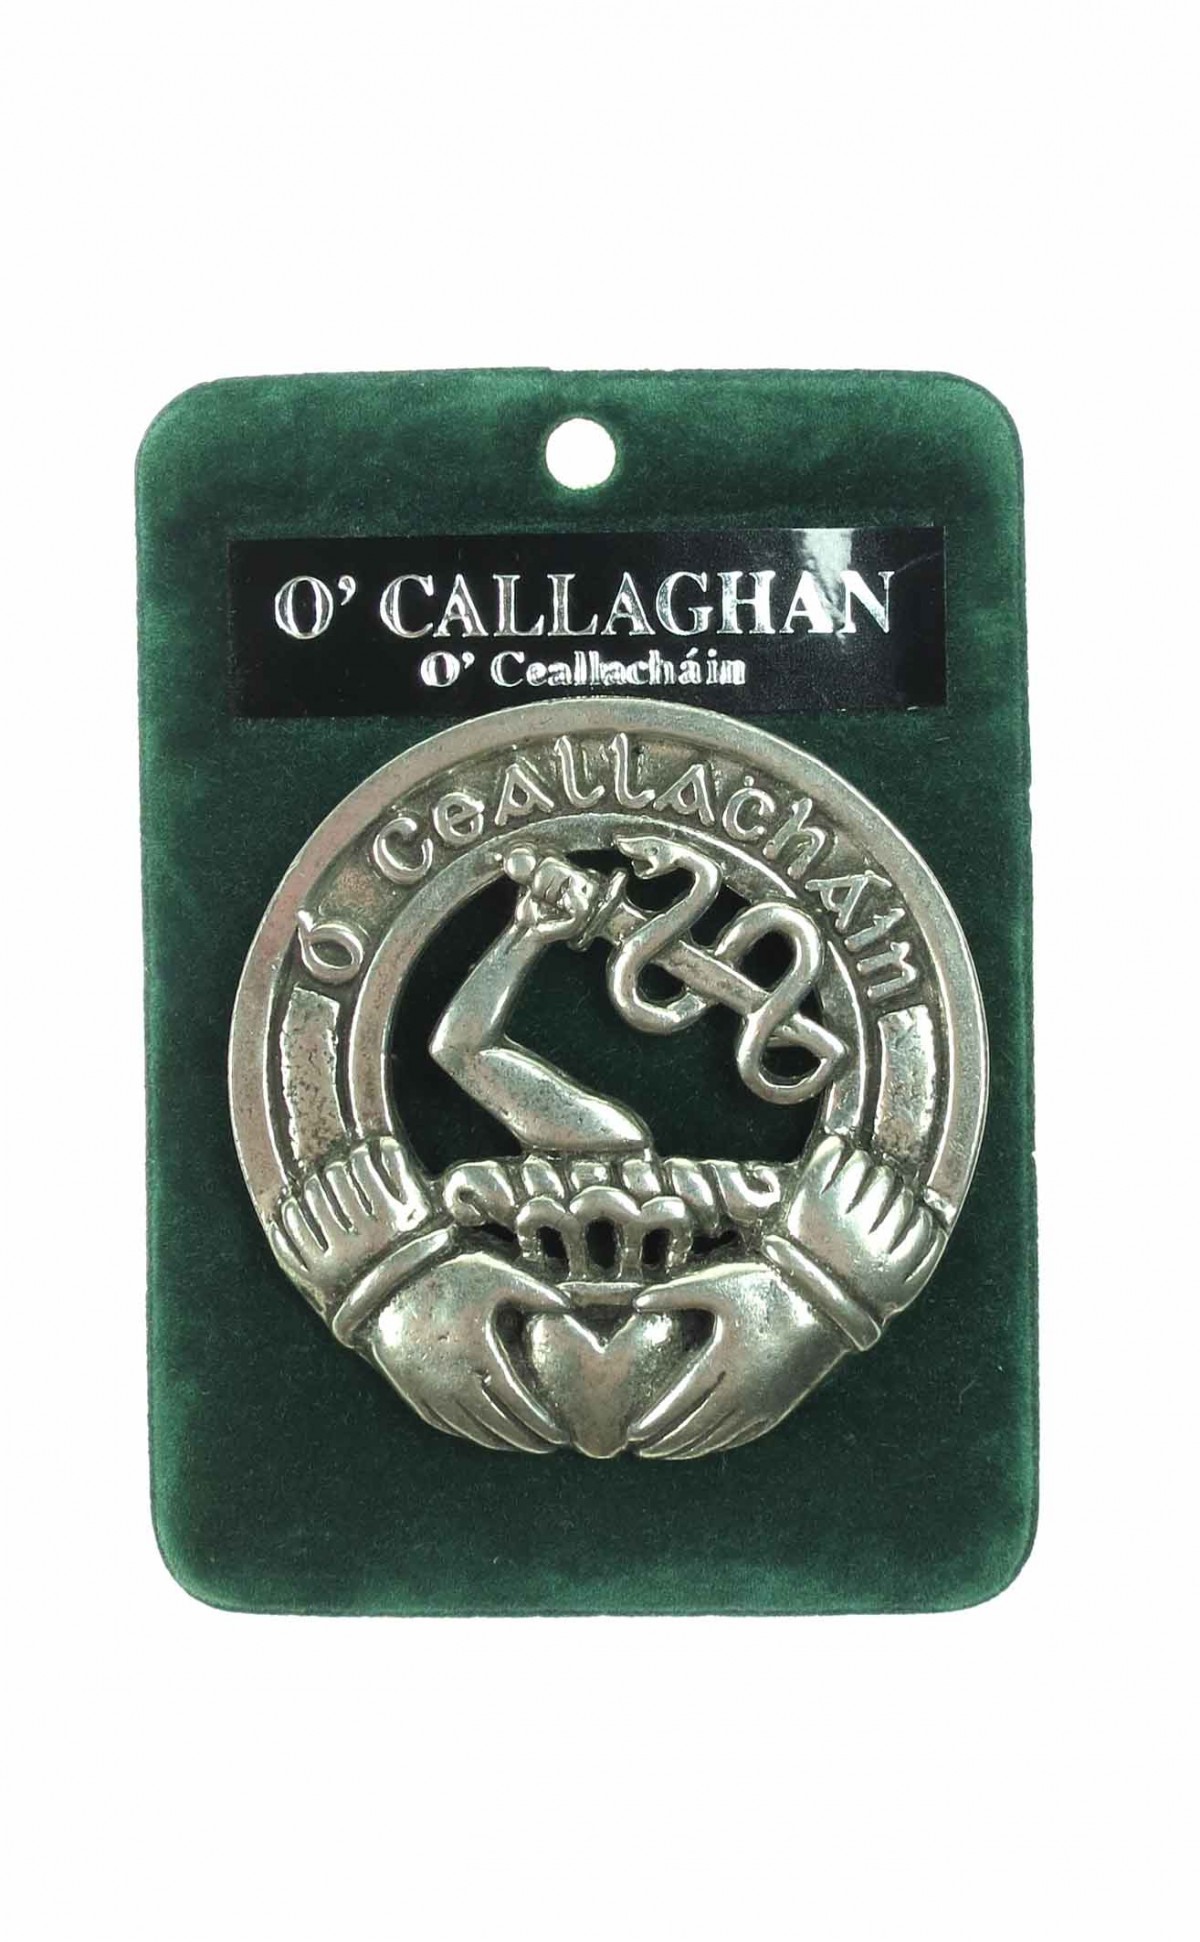 gaeli-sr_gaeli_irish_clan_cap_badge_cbi_2